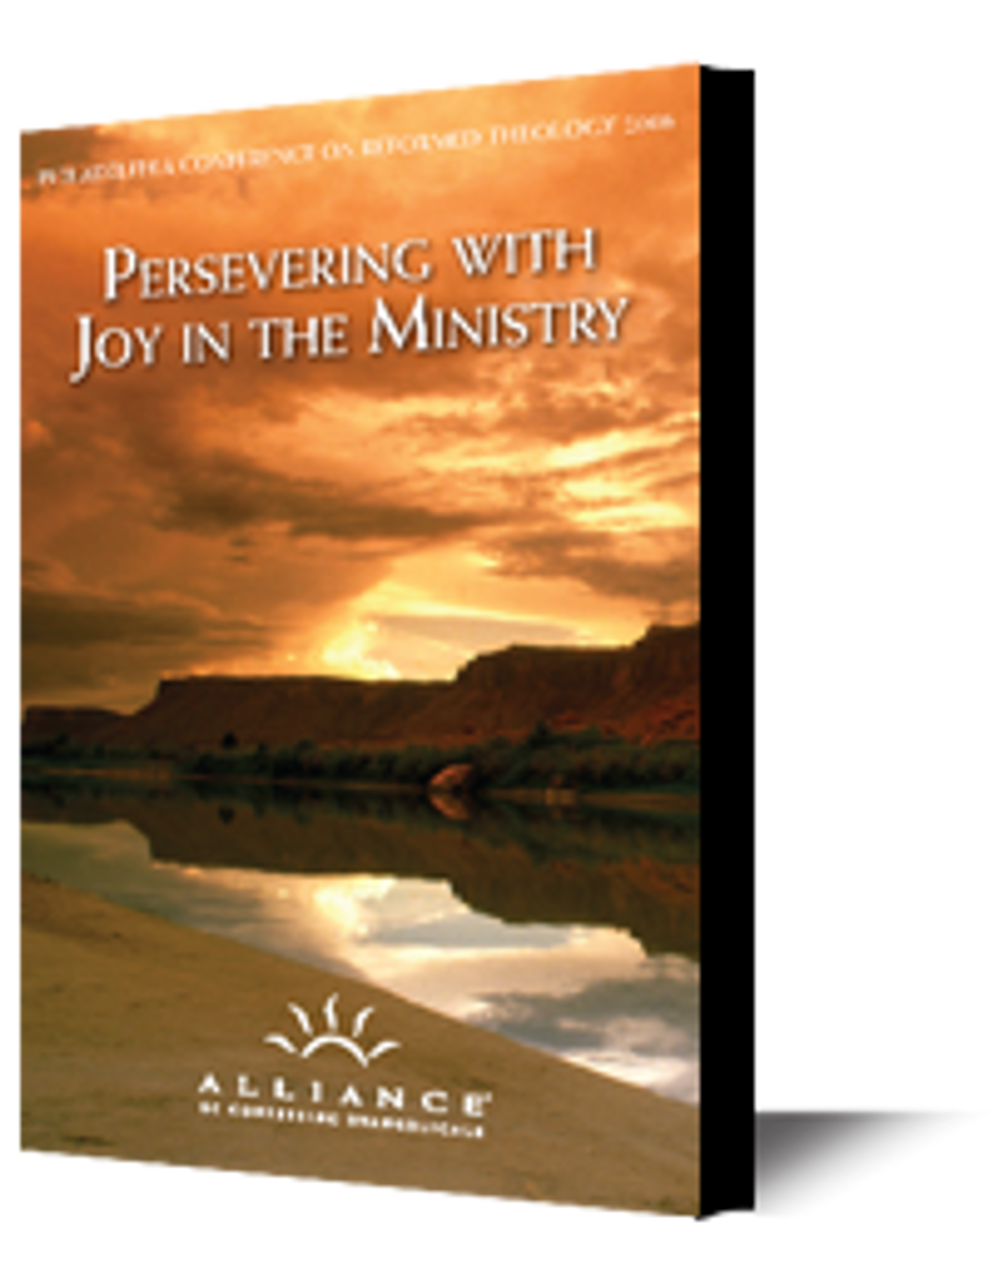 Persevering with Joy in the Ministry PCRT 2008 Pre-Conference (CD Set)